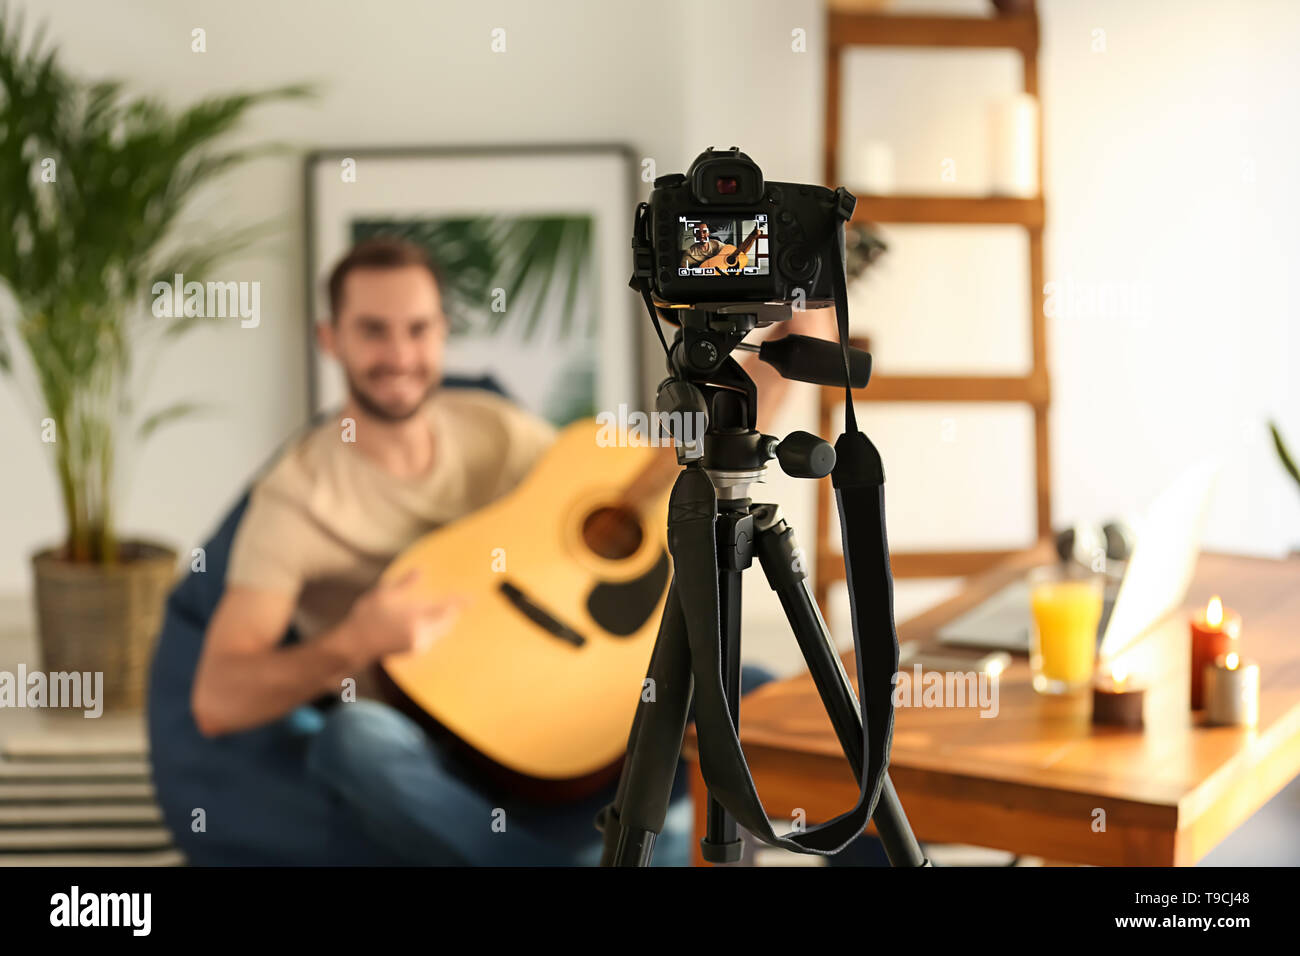 Young man with guitar recording video at home - Stock Image